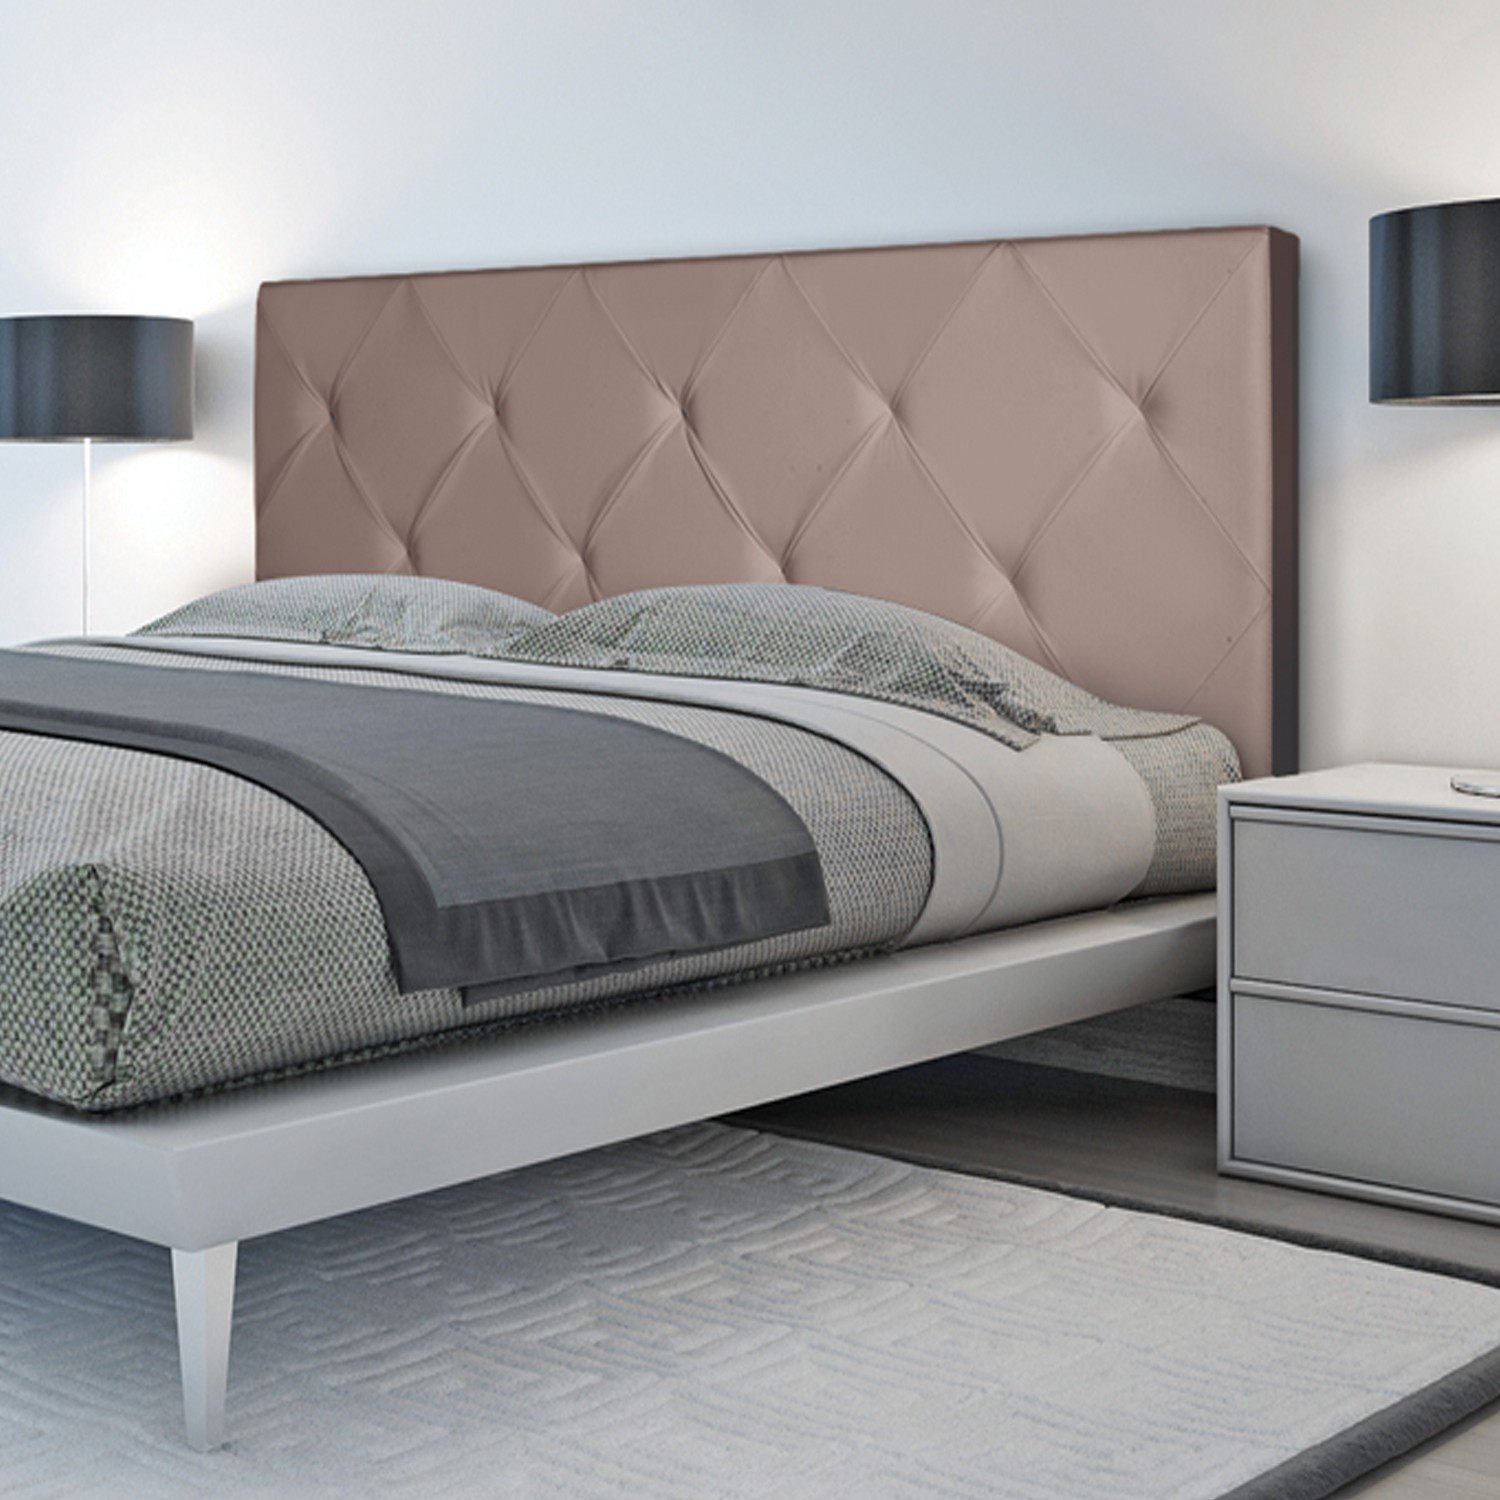 t te de lit capitonn e pvc taupe 160x58 cm imprim 14 boutons meub. Black Bedroom Furniture Sets. Home Design Ideas